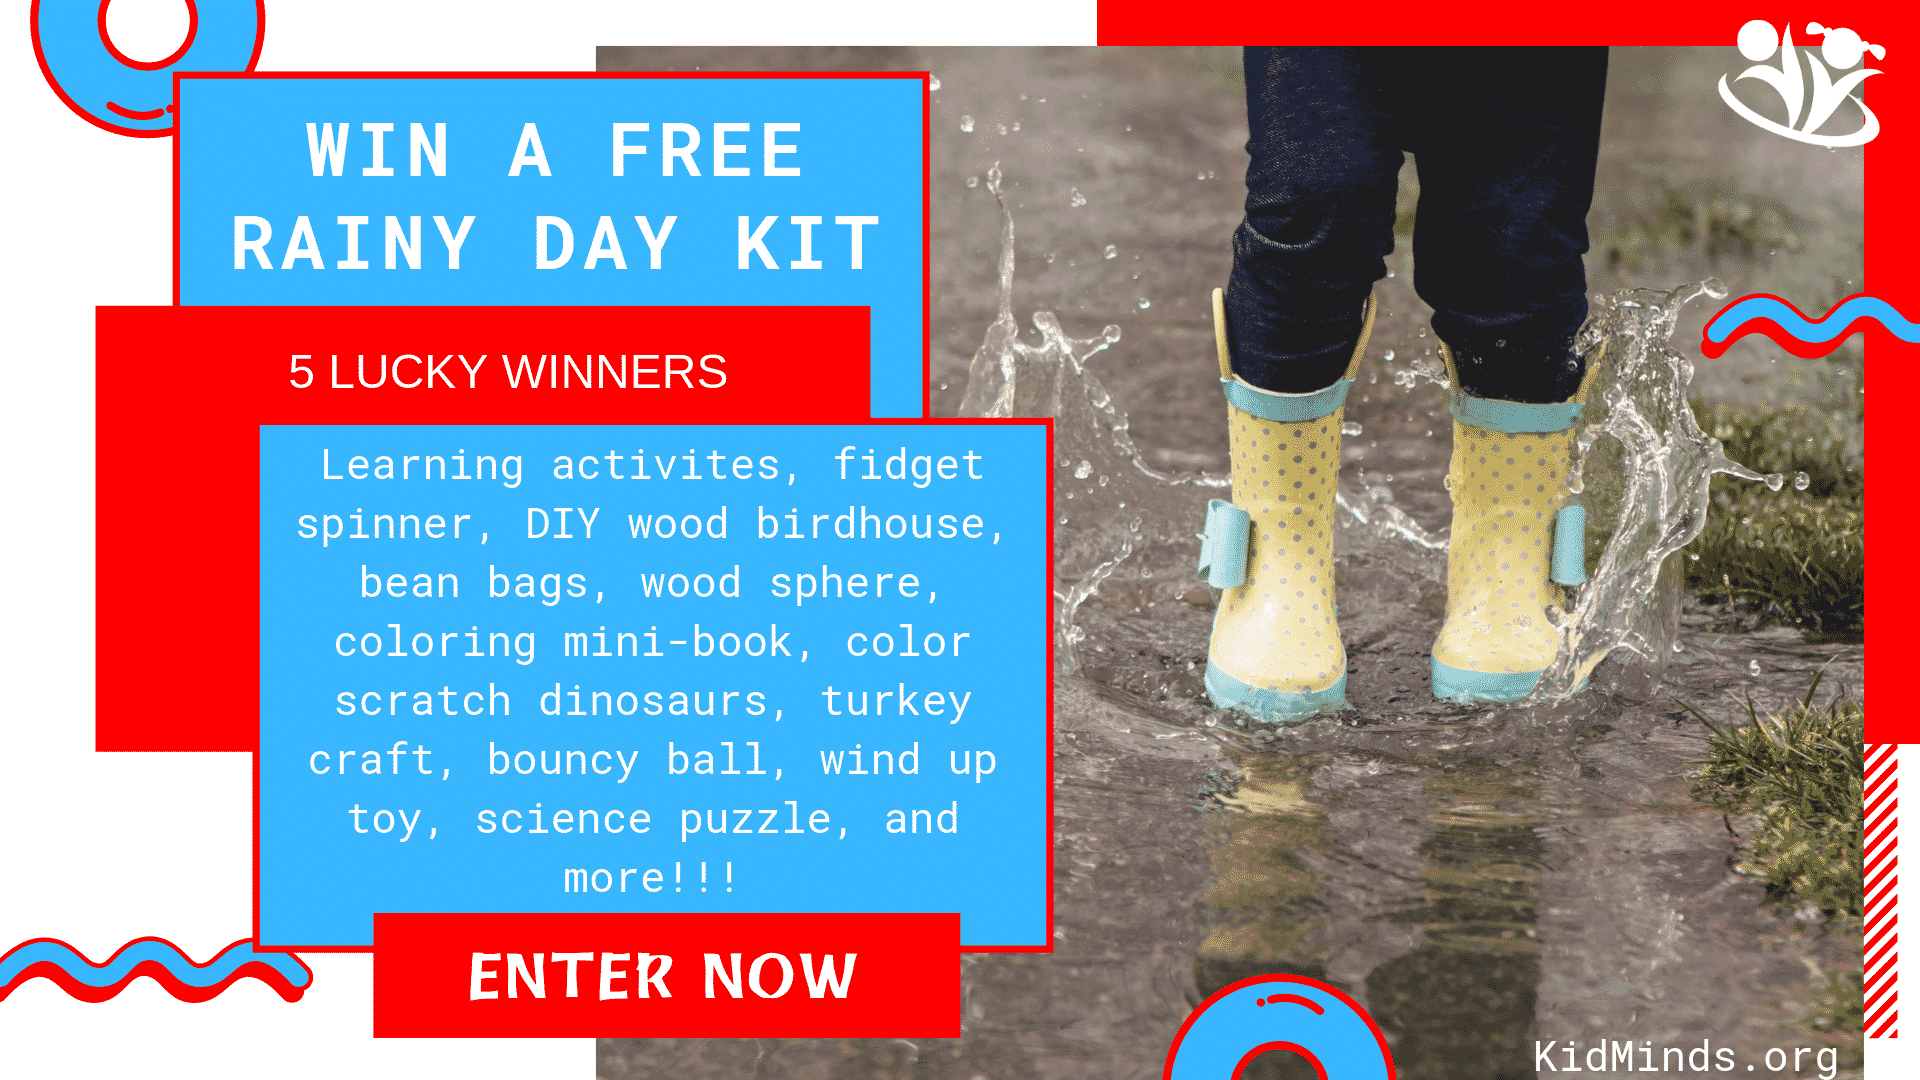 Rainy Day Kit for kids with 16 ridiculously fun projects, crafts, puzzles, experiments, and more.  #rainyday #kidsactivities #rainydayactivities #creativekids #boredombusters #learningallthetime #handsonlearning #kidminds